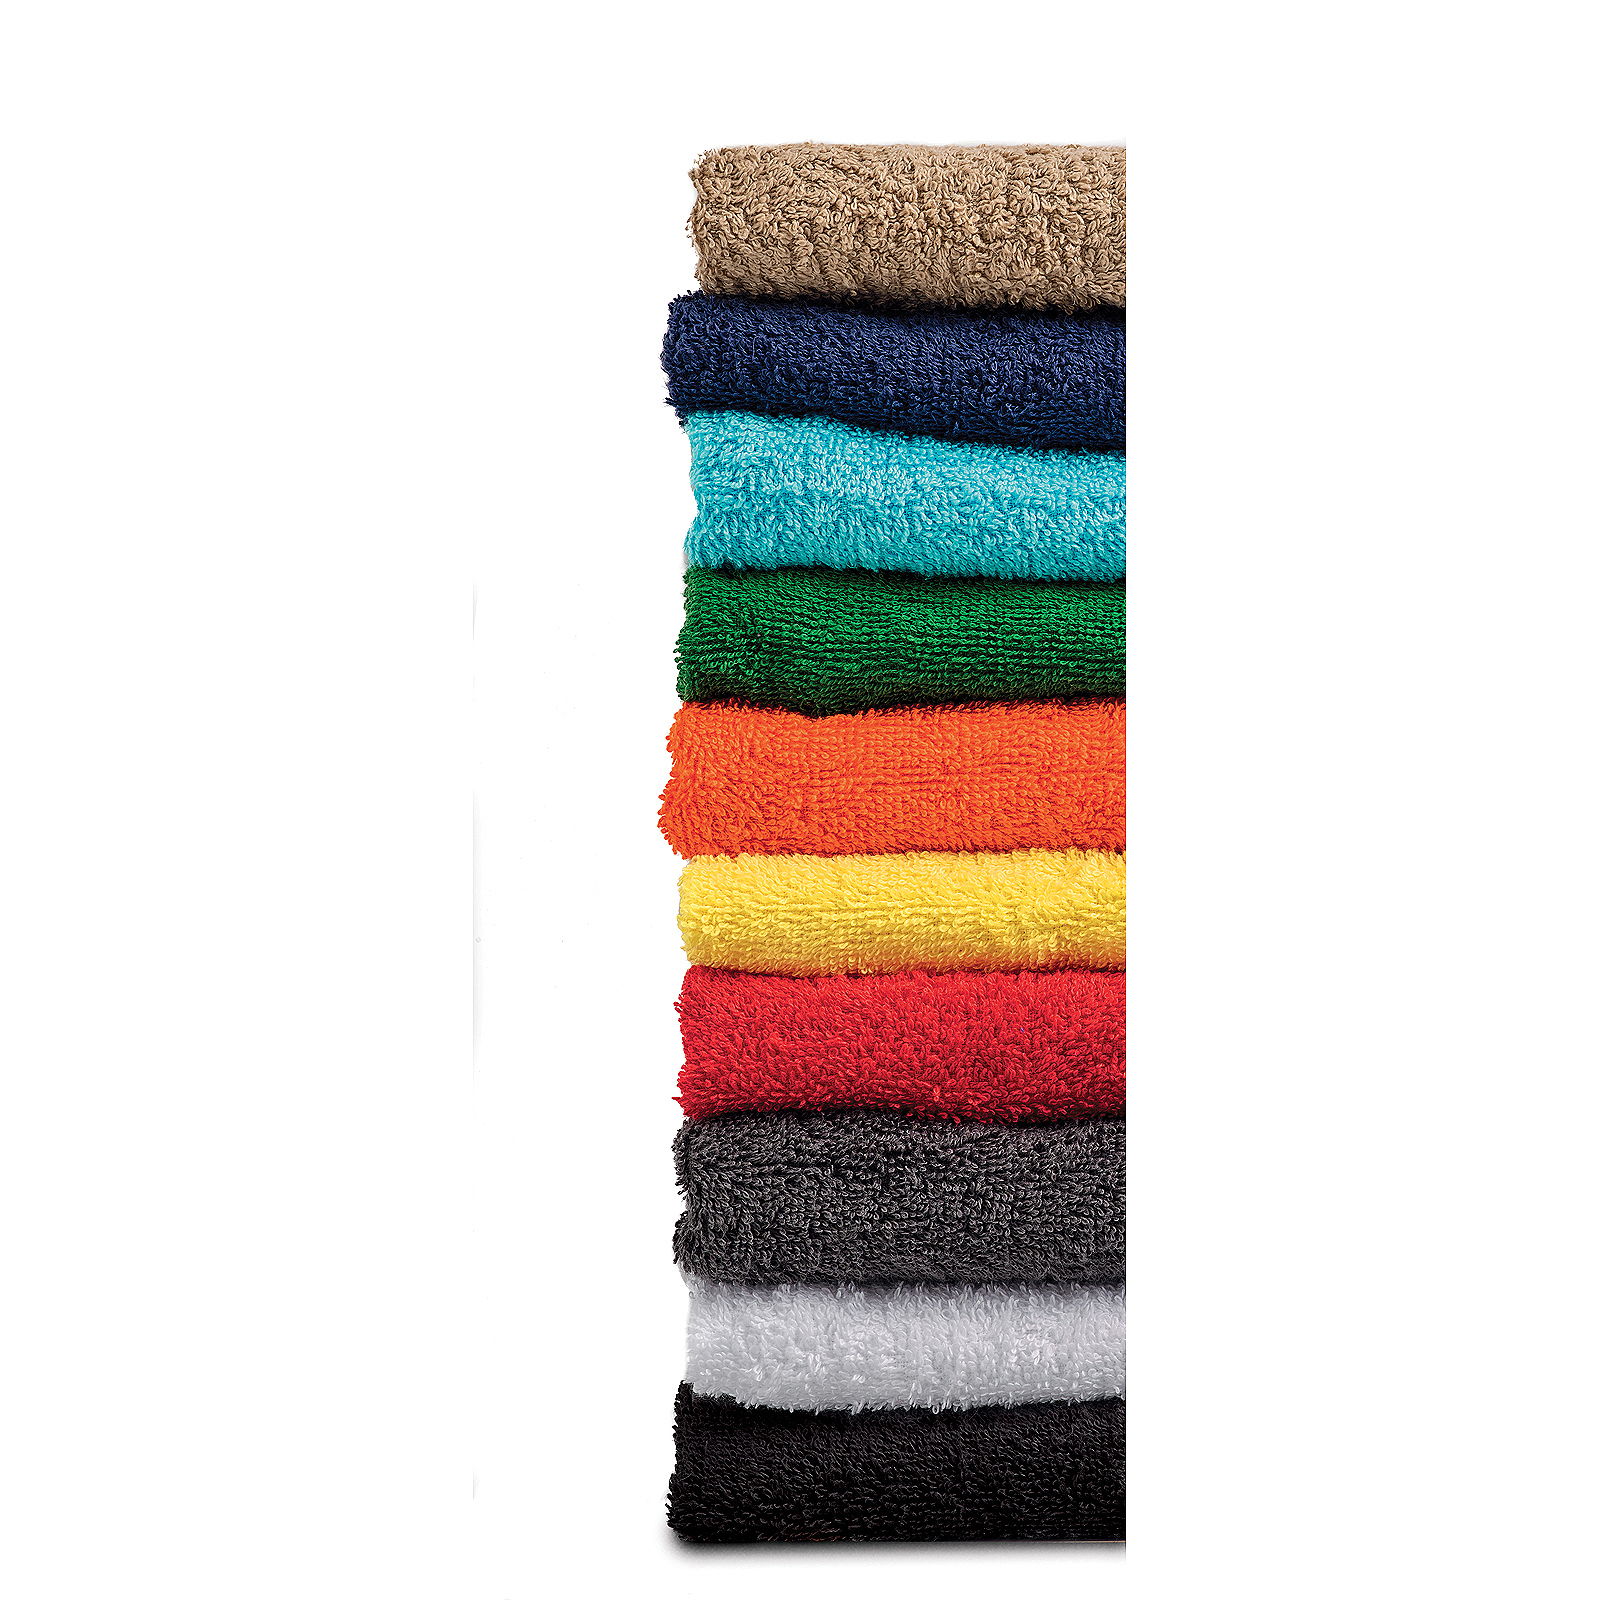 Details about Island 50 Hand Towel Cotton Soft Luxury Face Cloth TwistFast  Dry Bath Home Sheet